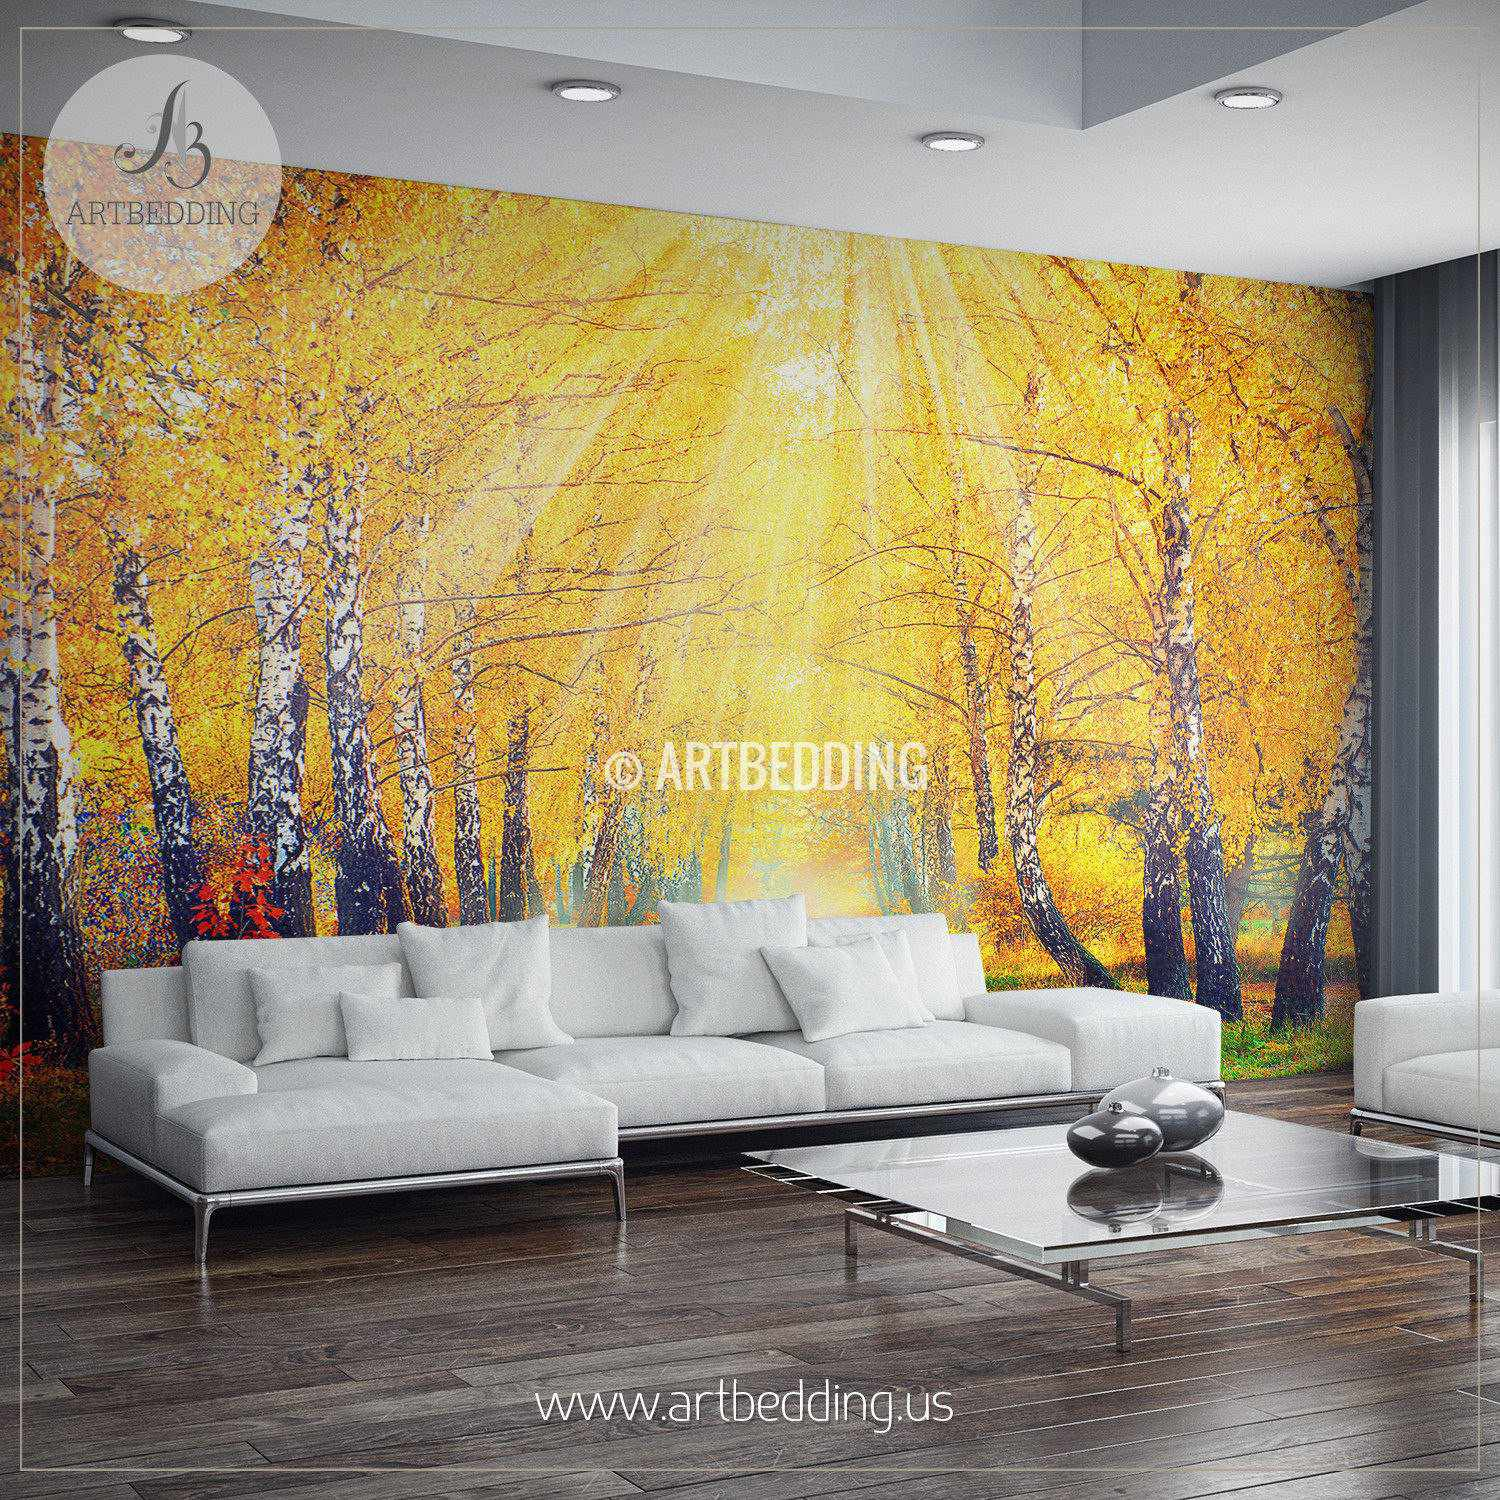 Cool Self Adhesive Wall Art Pictures Inspiration - The Wall Art ...